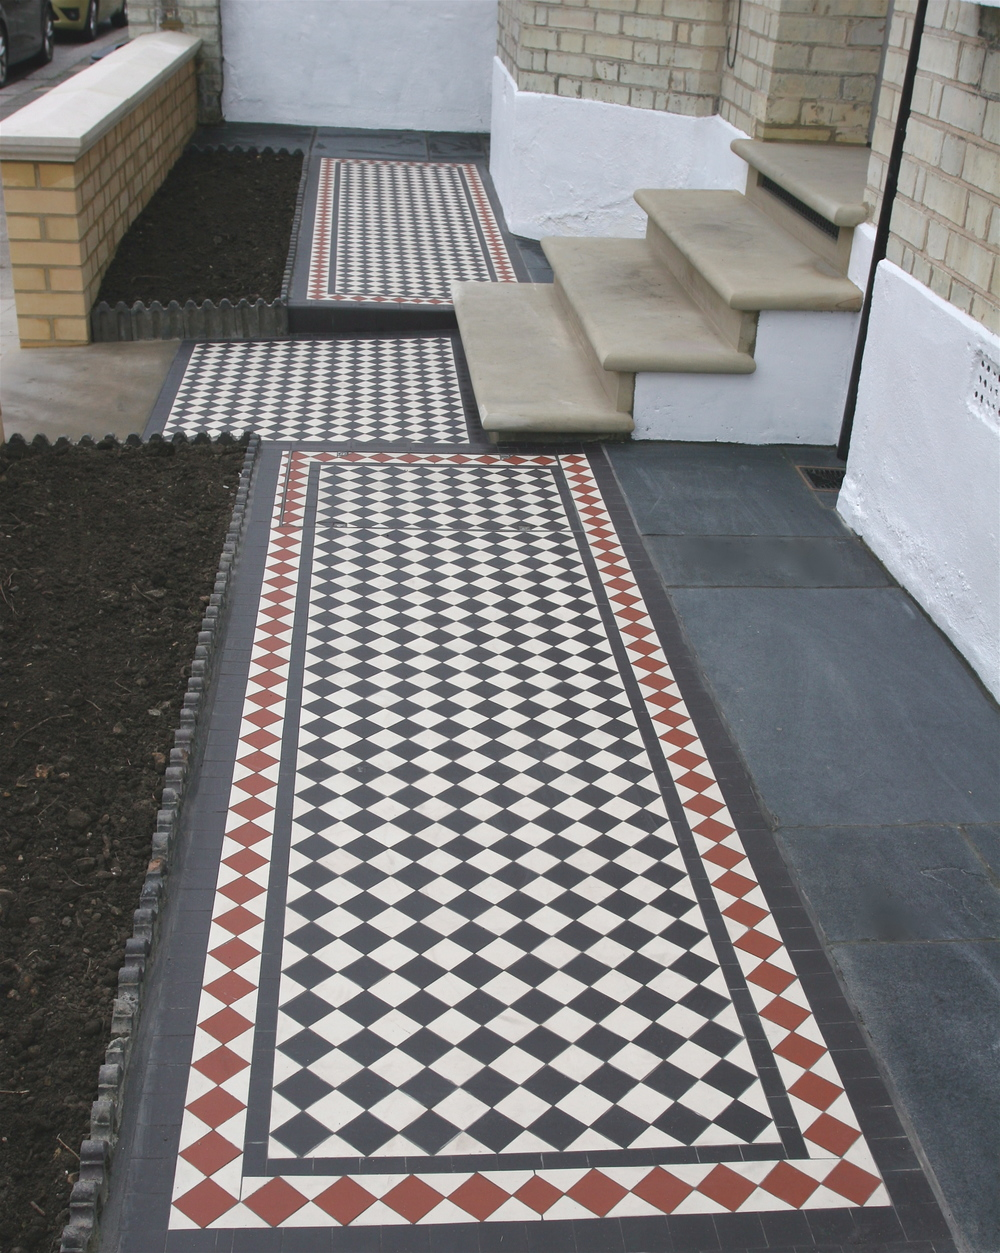 020 Black & White Chequer with Red Diamond Border